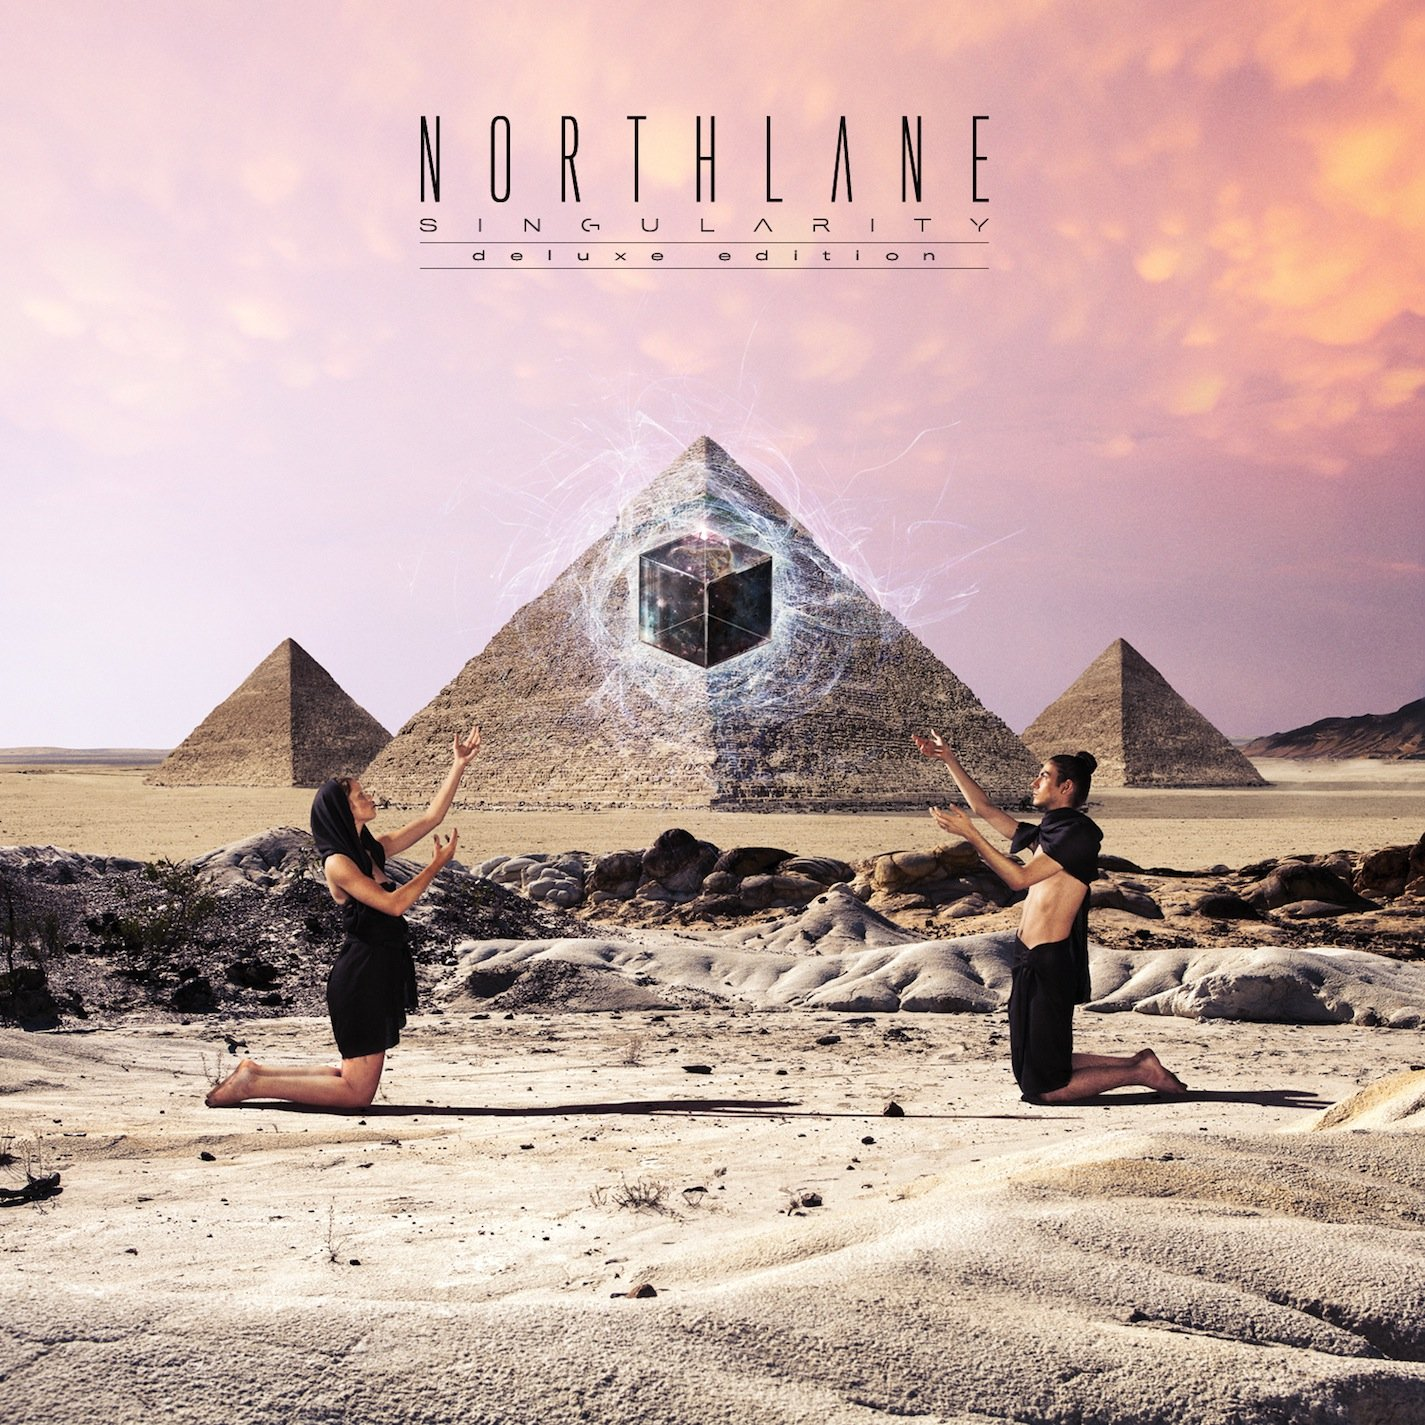 CD : Northlane - Singularity Deluxe Reissue (Deluxe Edition, Reissue, 2PC)